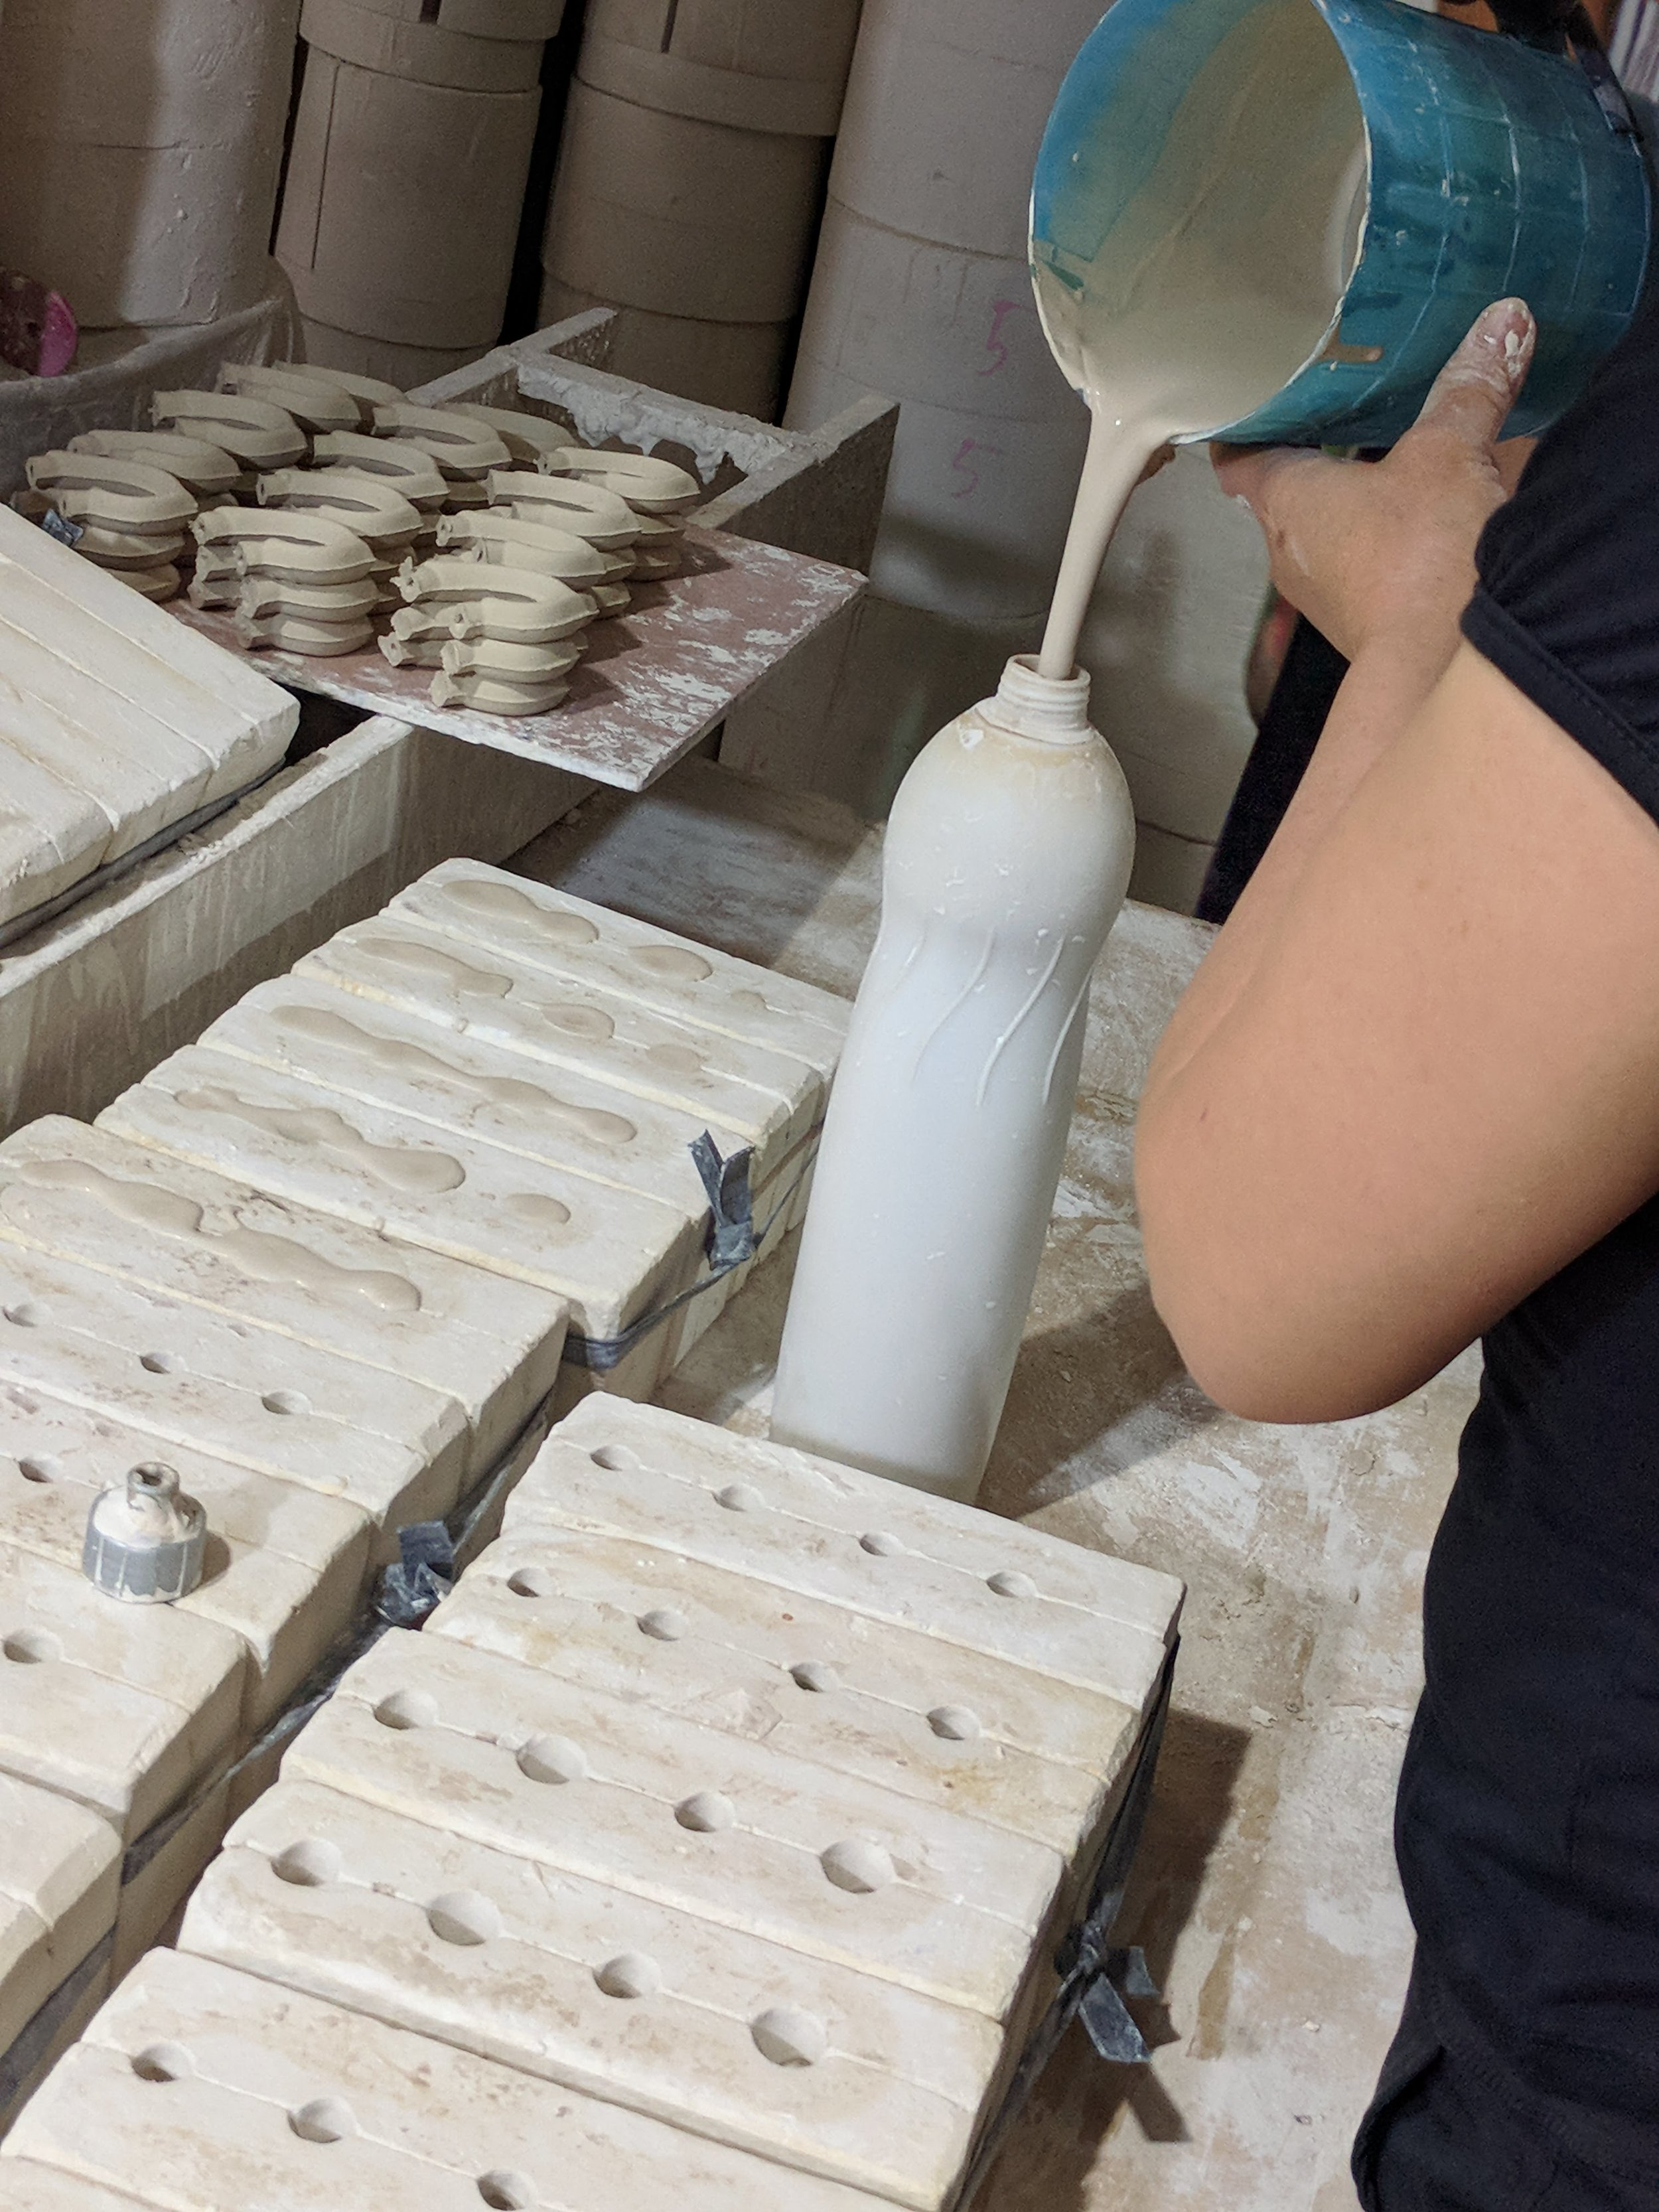 To create a piece using a mold, the wet mixture is poured into a bottle for easy dispensing